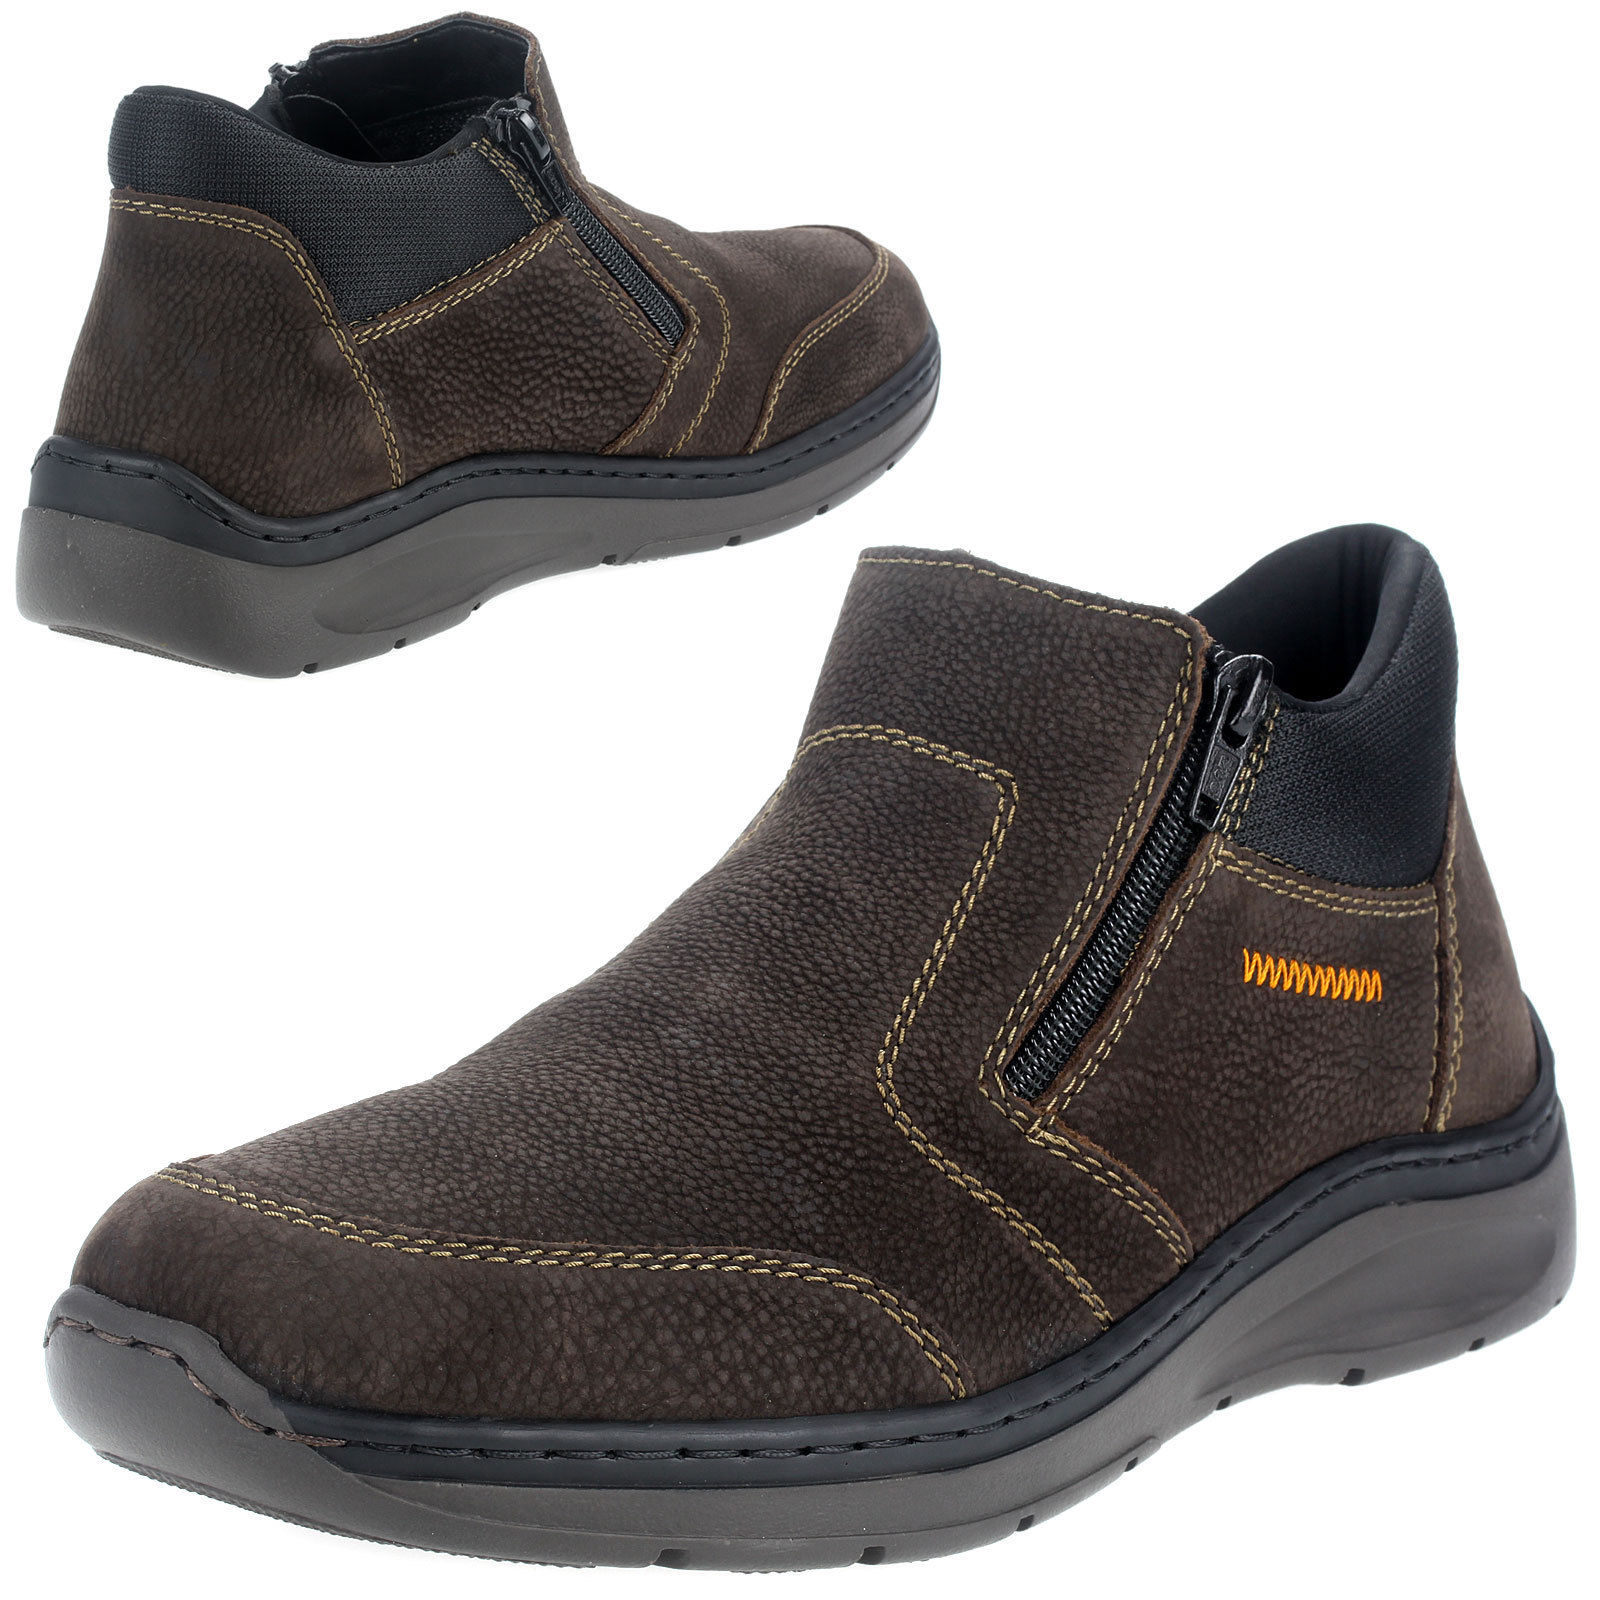 Details about Rieker Men's Shoes Boots Comfort Extra Wide Men's Shoes B895325 Brown